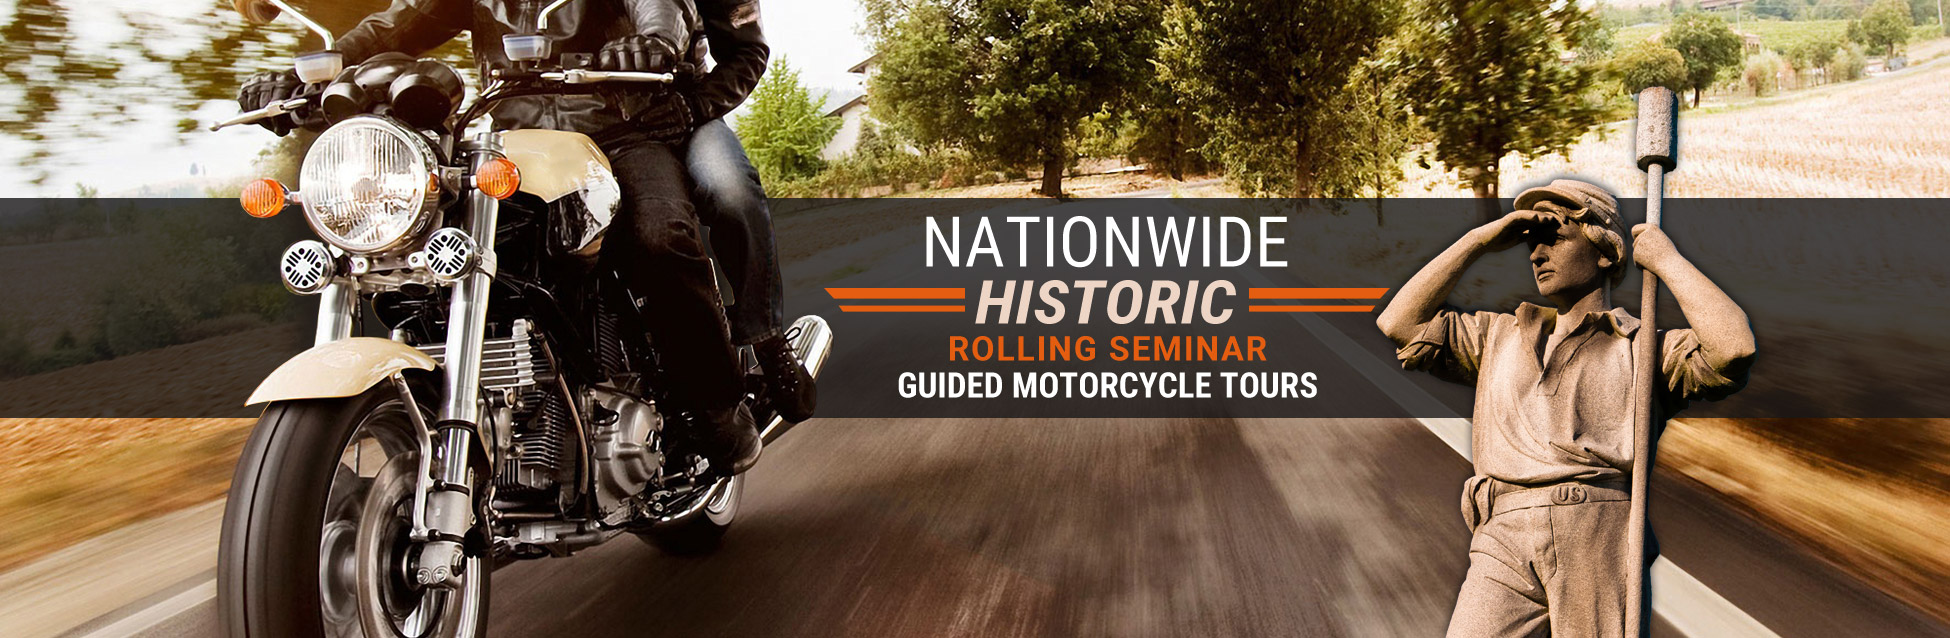 Nationwide Historic Rolling Seminar Guided Motorcycle Tours